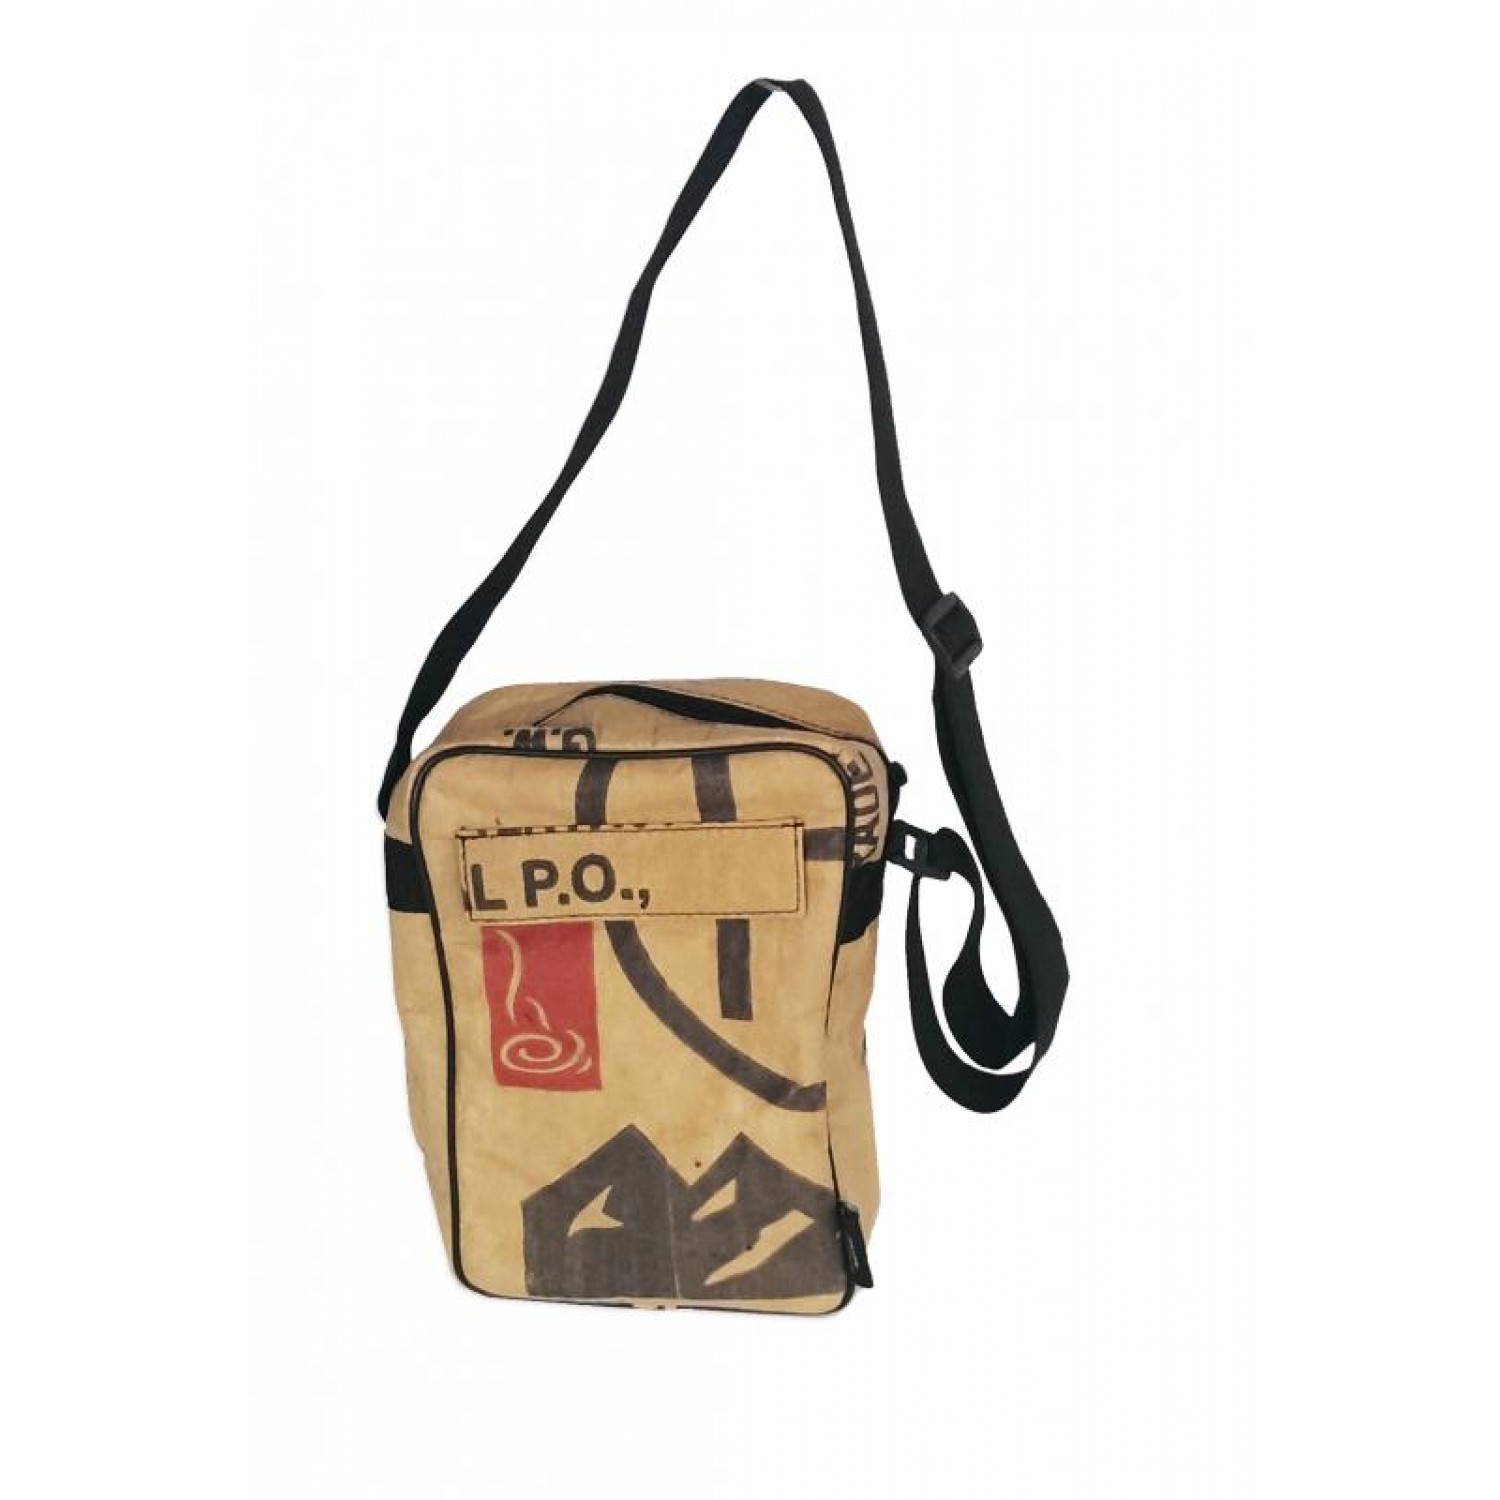 Ragbag Teabag Shoulderbag small